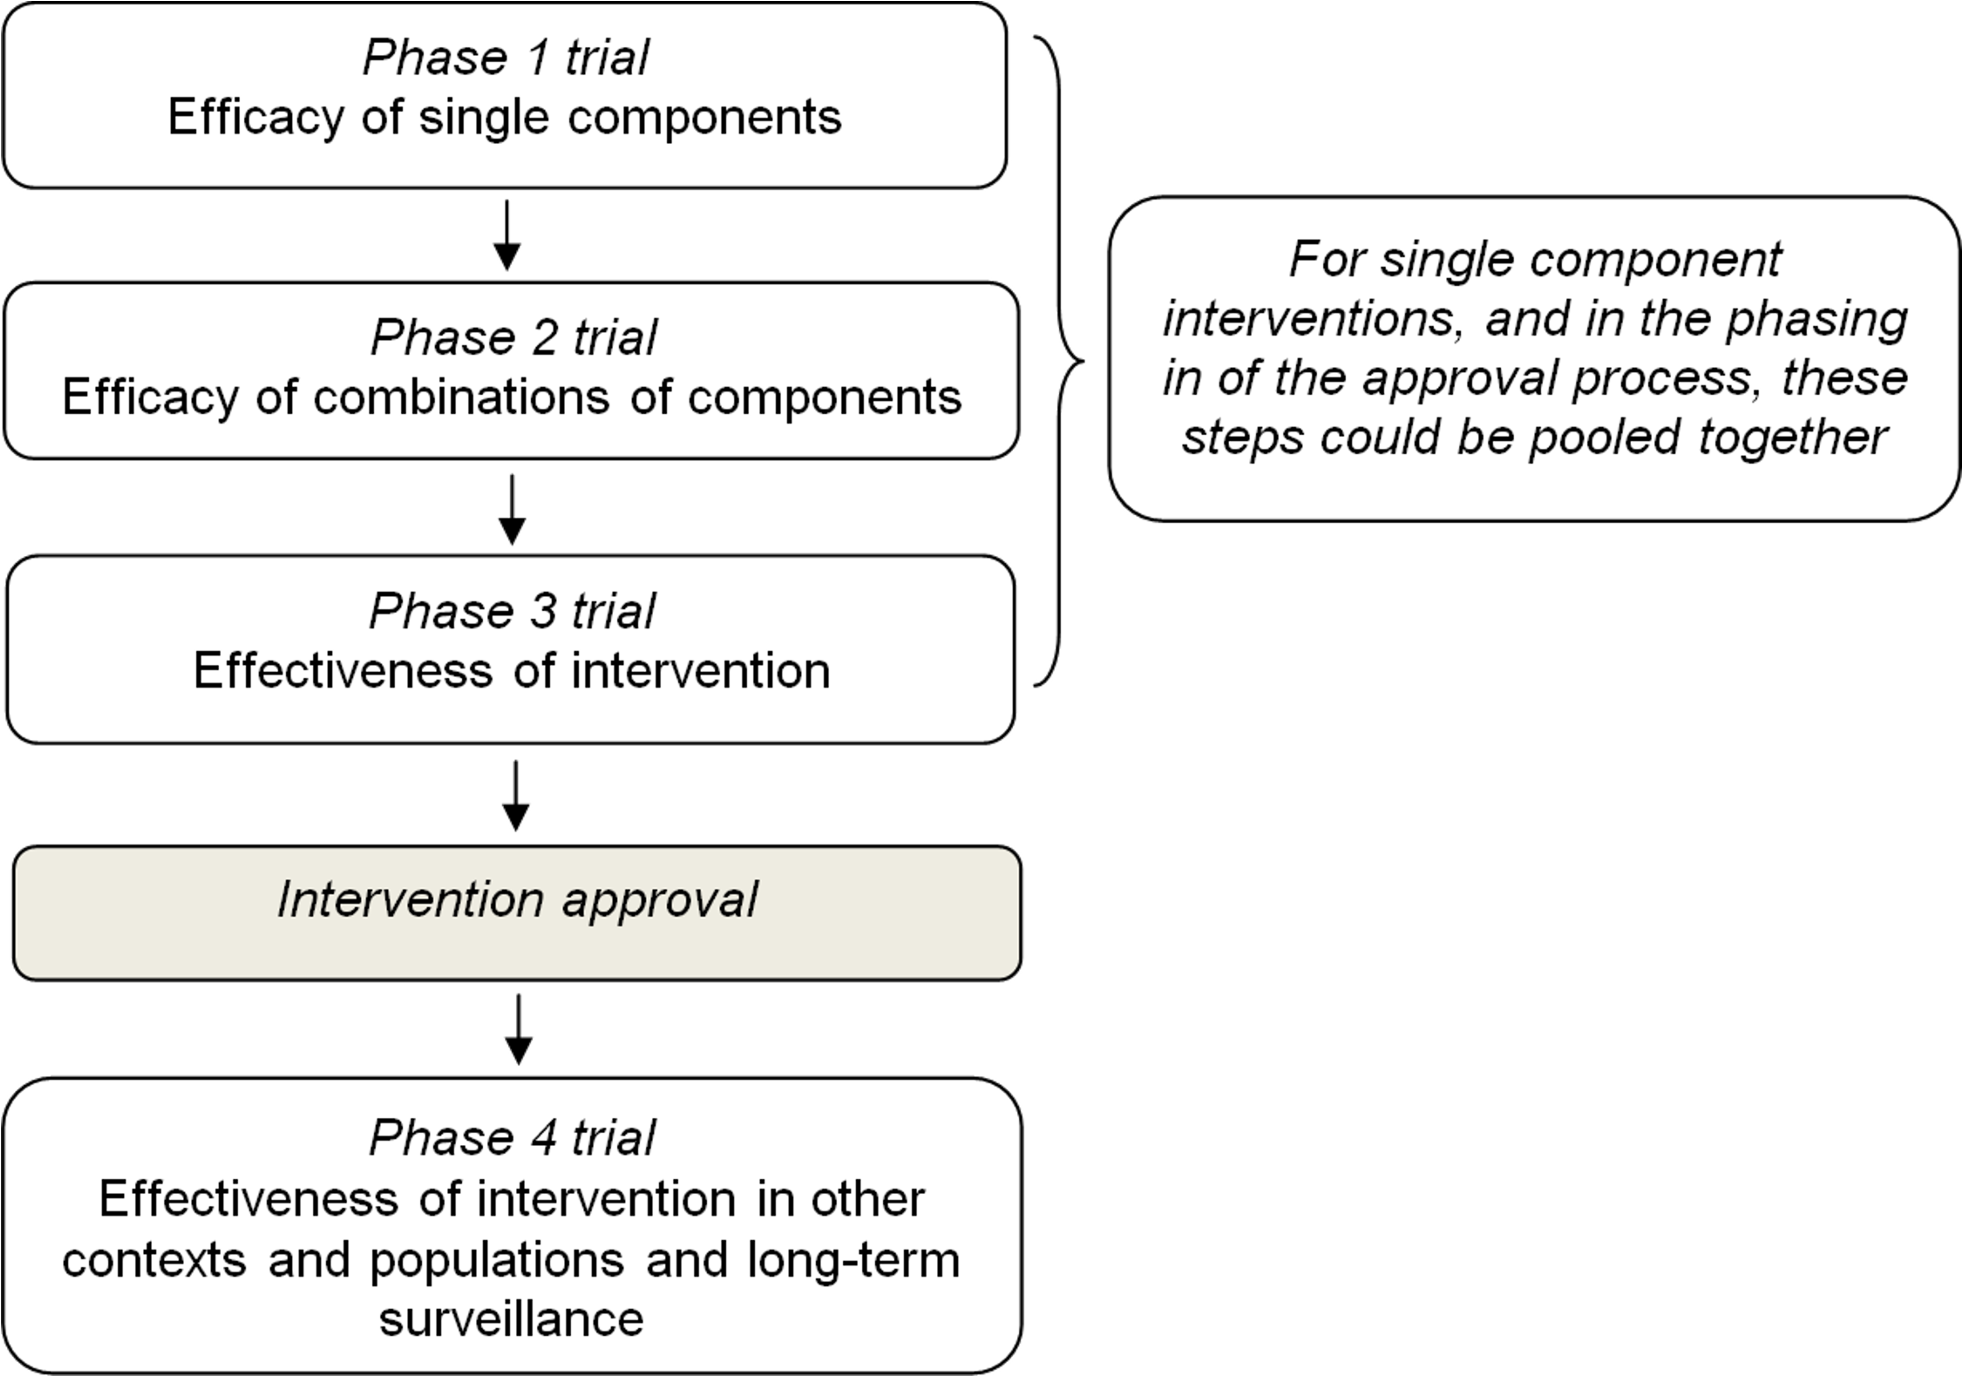 Proposal for a four-step evaluation and approval process of prevention interventions for health-compromising behaviours.